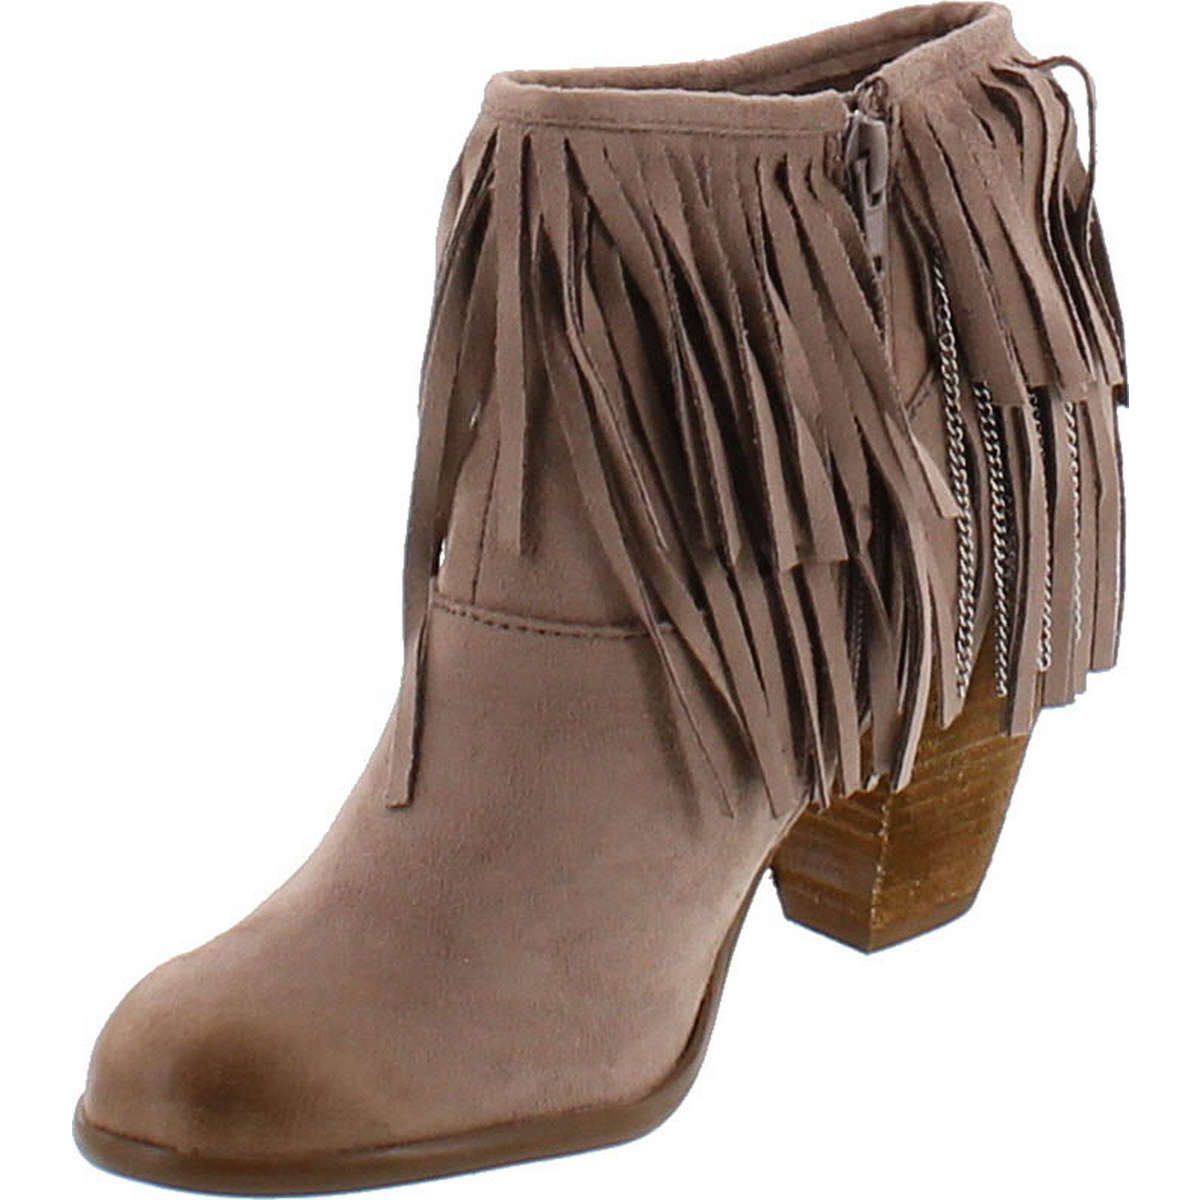 Not Rated Rated Rated Women's Auriga Ankle Fringe Bootie 2c4e9e